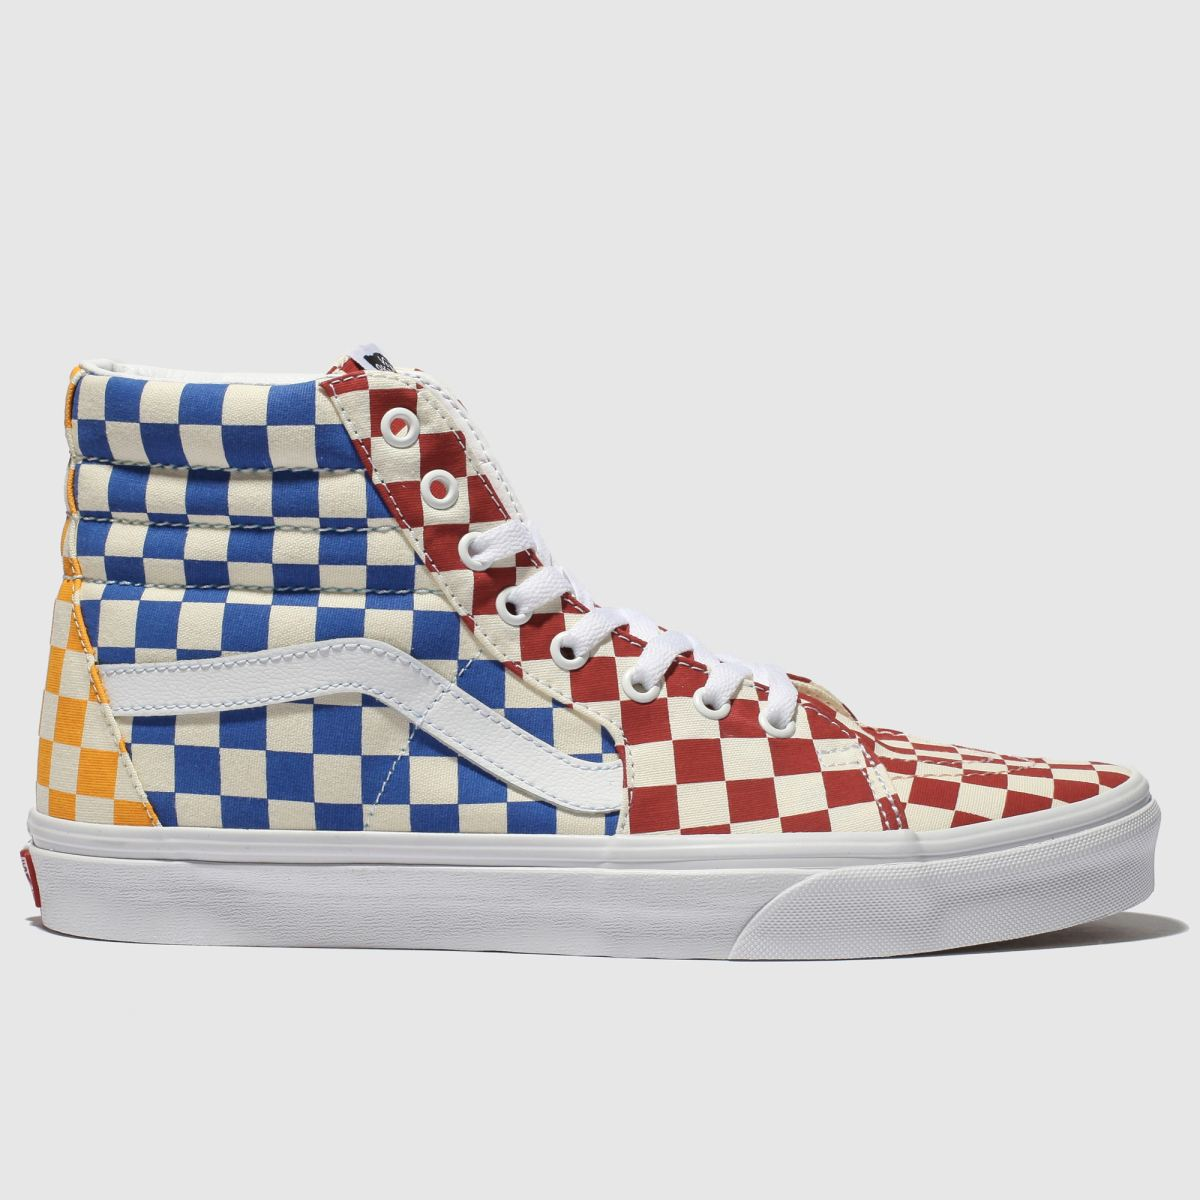 Vans Yellow & Blue Sk8-hi Checkerboard Trainers